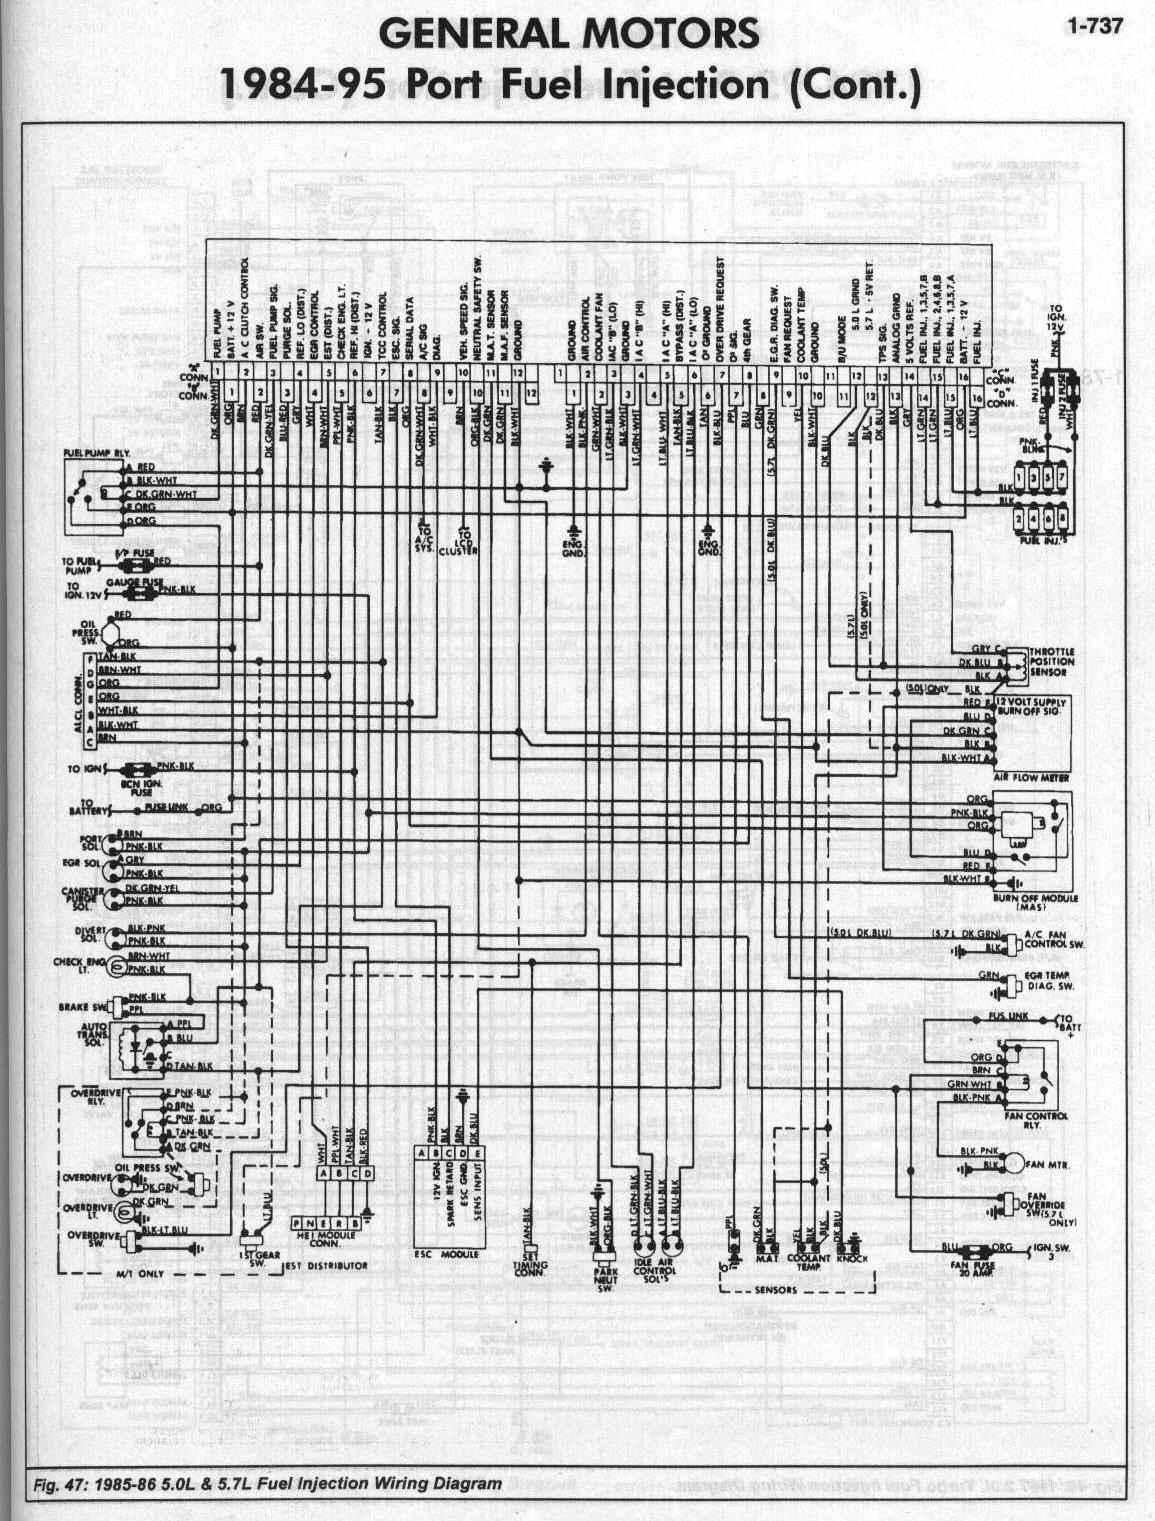 1997 chevy c1500 wiring diagram my 85 z28 and eprom project  my 85 z28 and eprom project